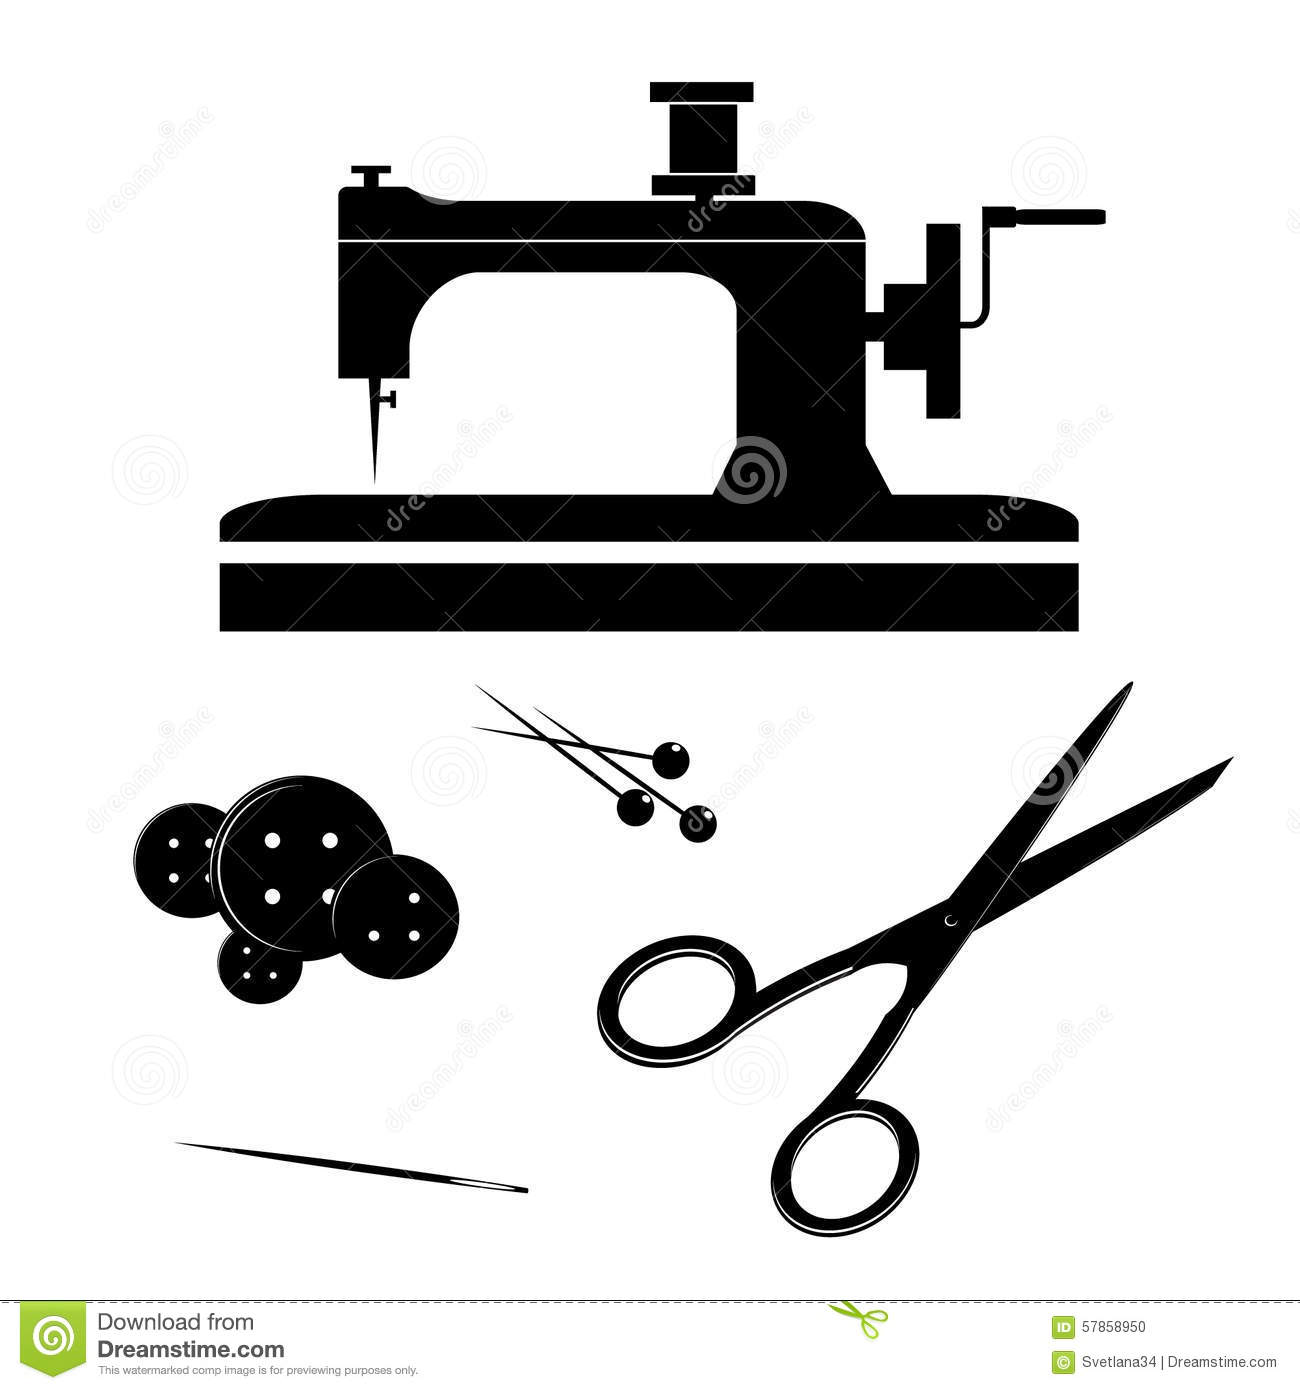 Icon Sewing Machine Silhouettes Subjects Buttons Needle Scissors Abstract